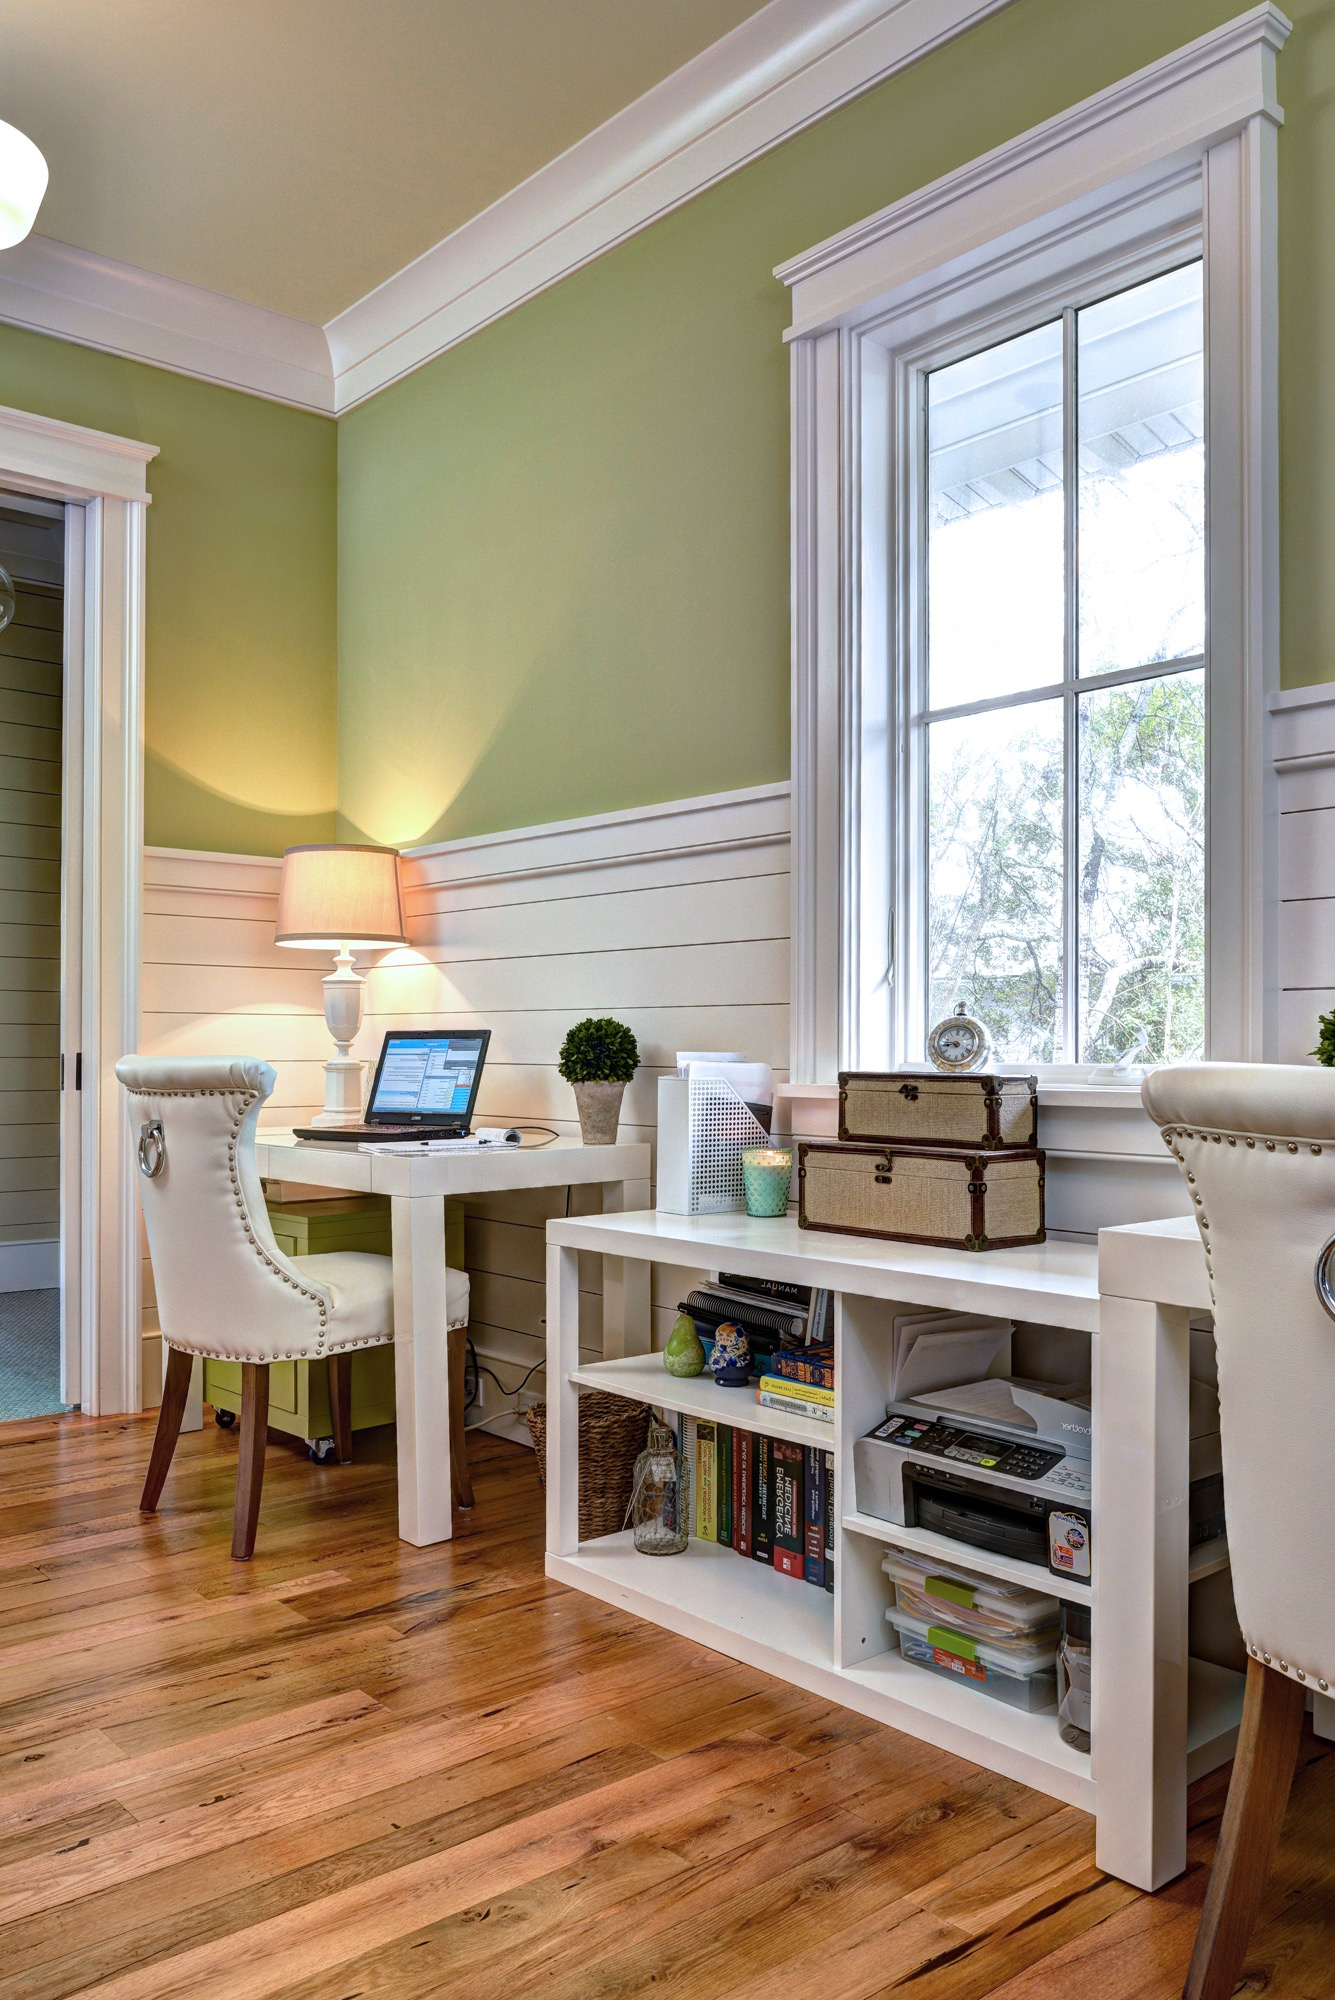 Home Office With Green Walls And Costal Style Wainscoting (Image 24 of 50)